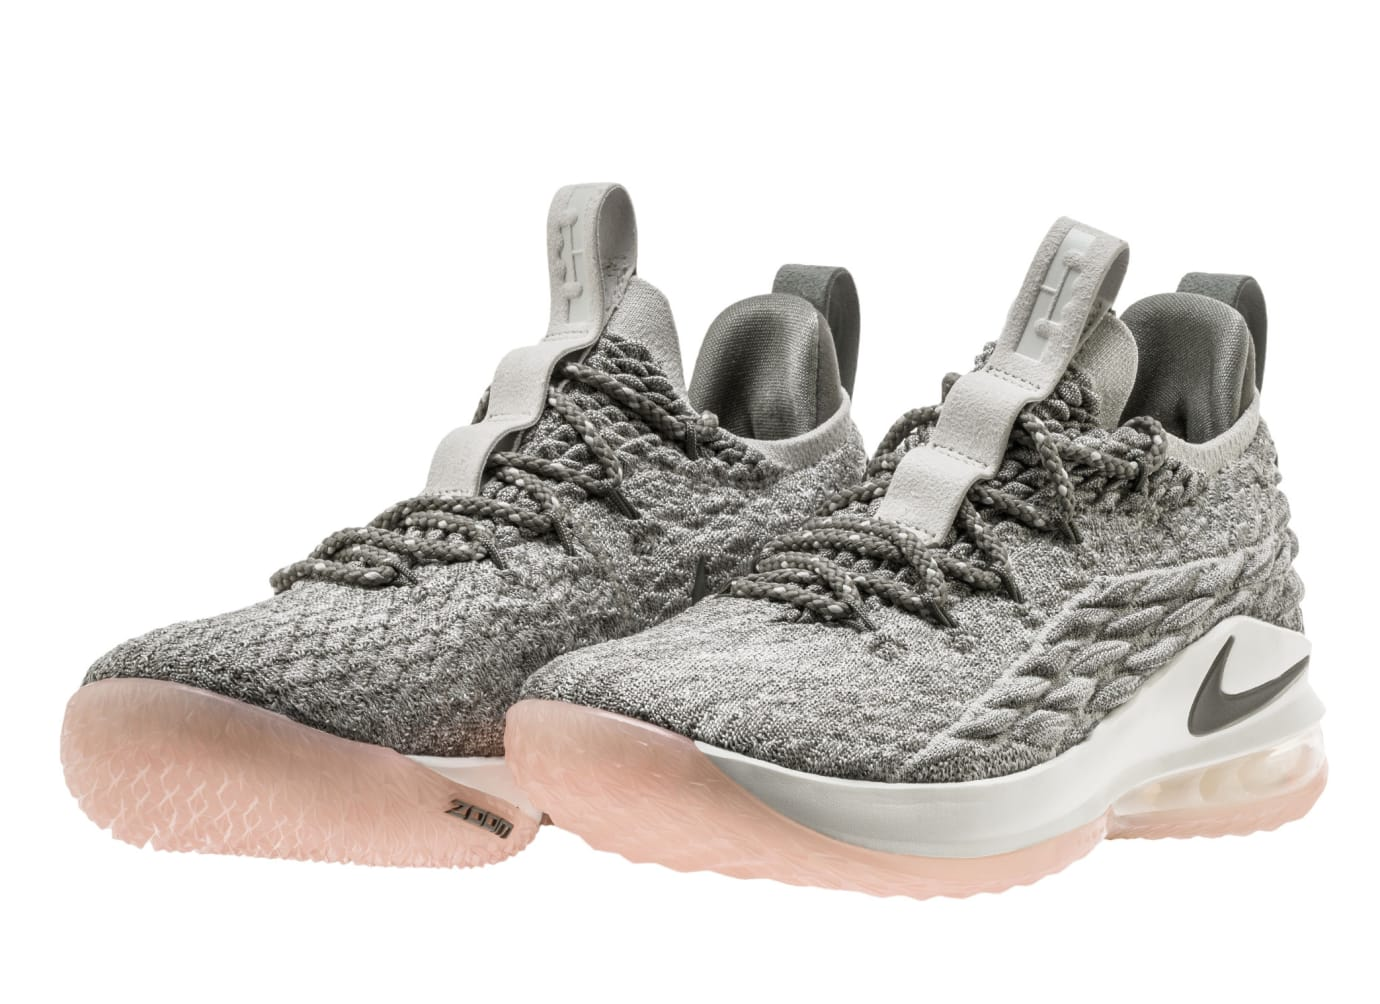 f517fc79e6d2 Image via Nike Nike LeBron 15 Low Light Bone Dark Stucco Sail AO1755-003  Pair